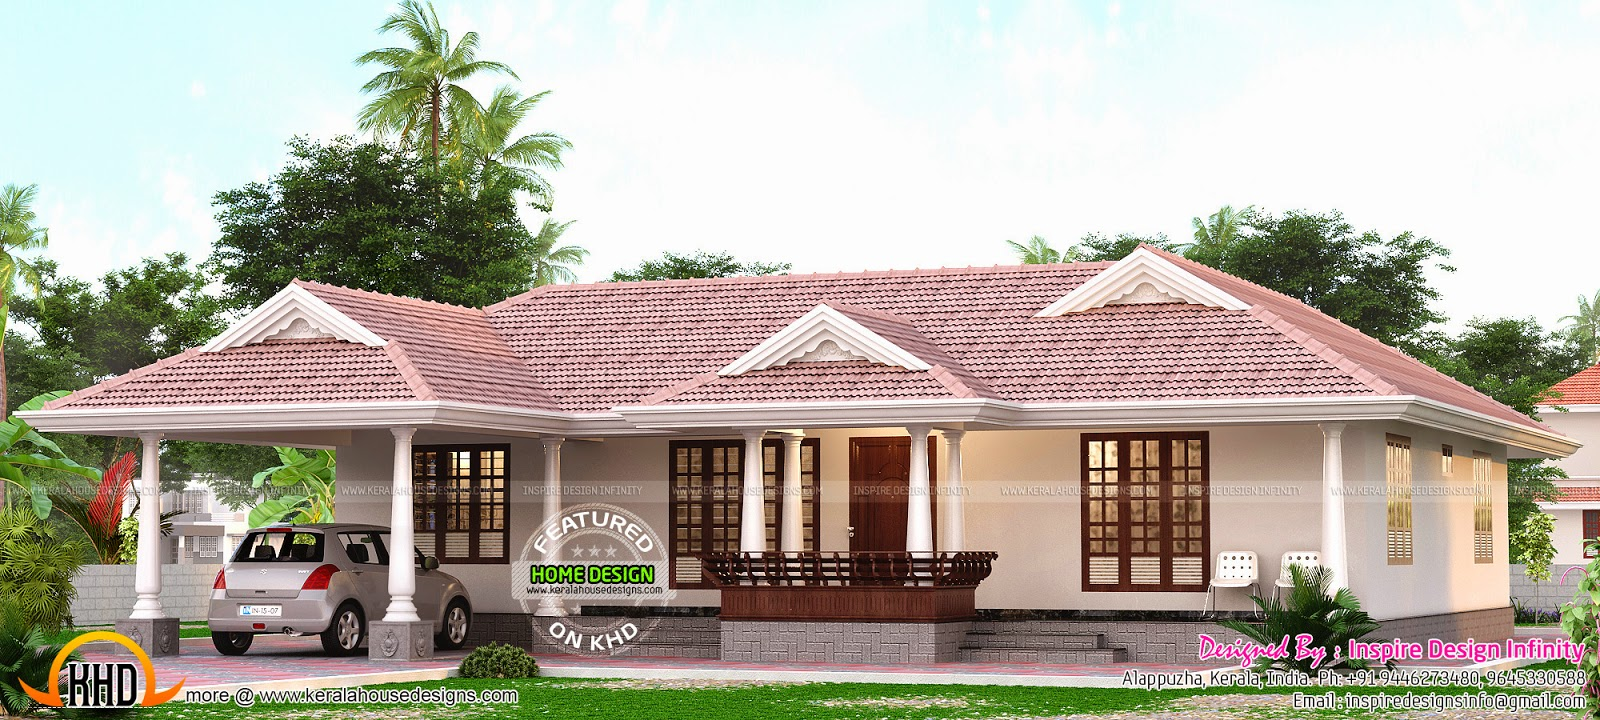 Kerala model single storied home kerala home design and for Kerala style home